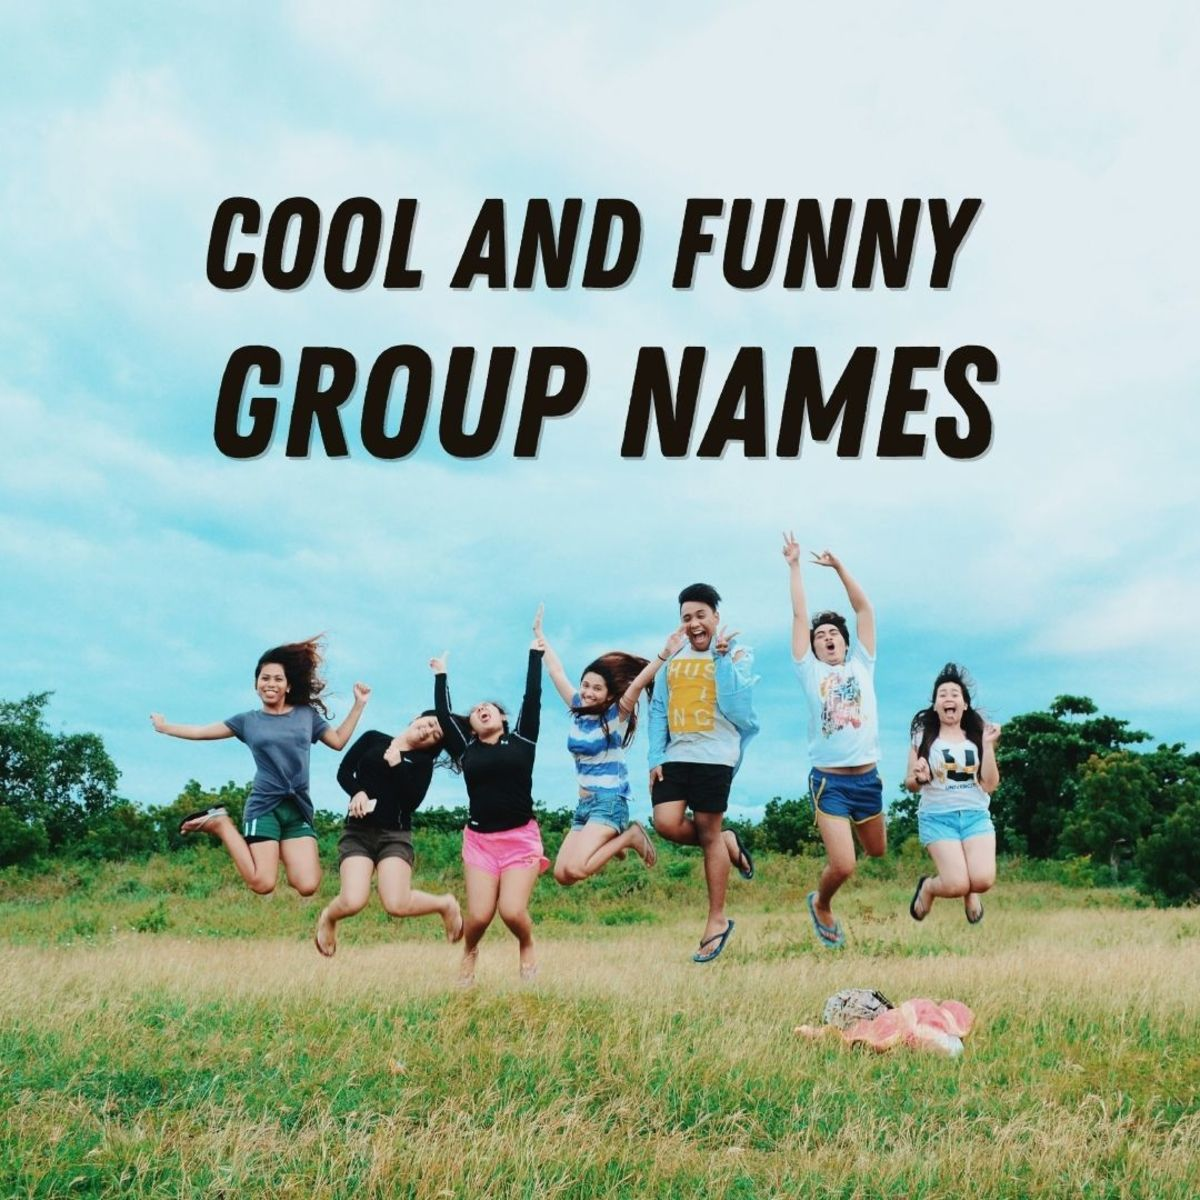 Come up with a fun group name for your friends!